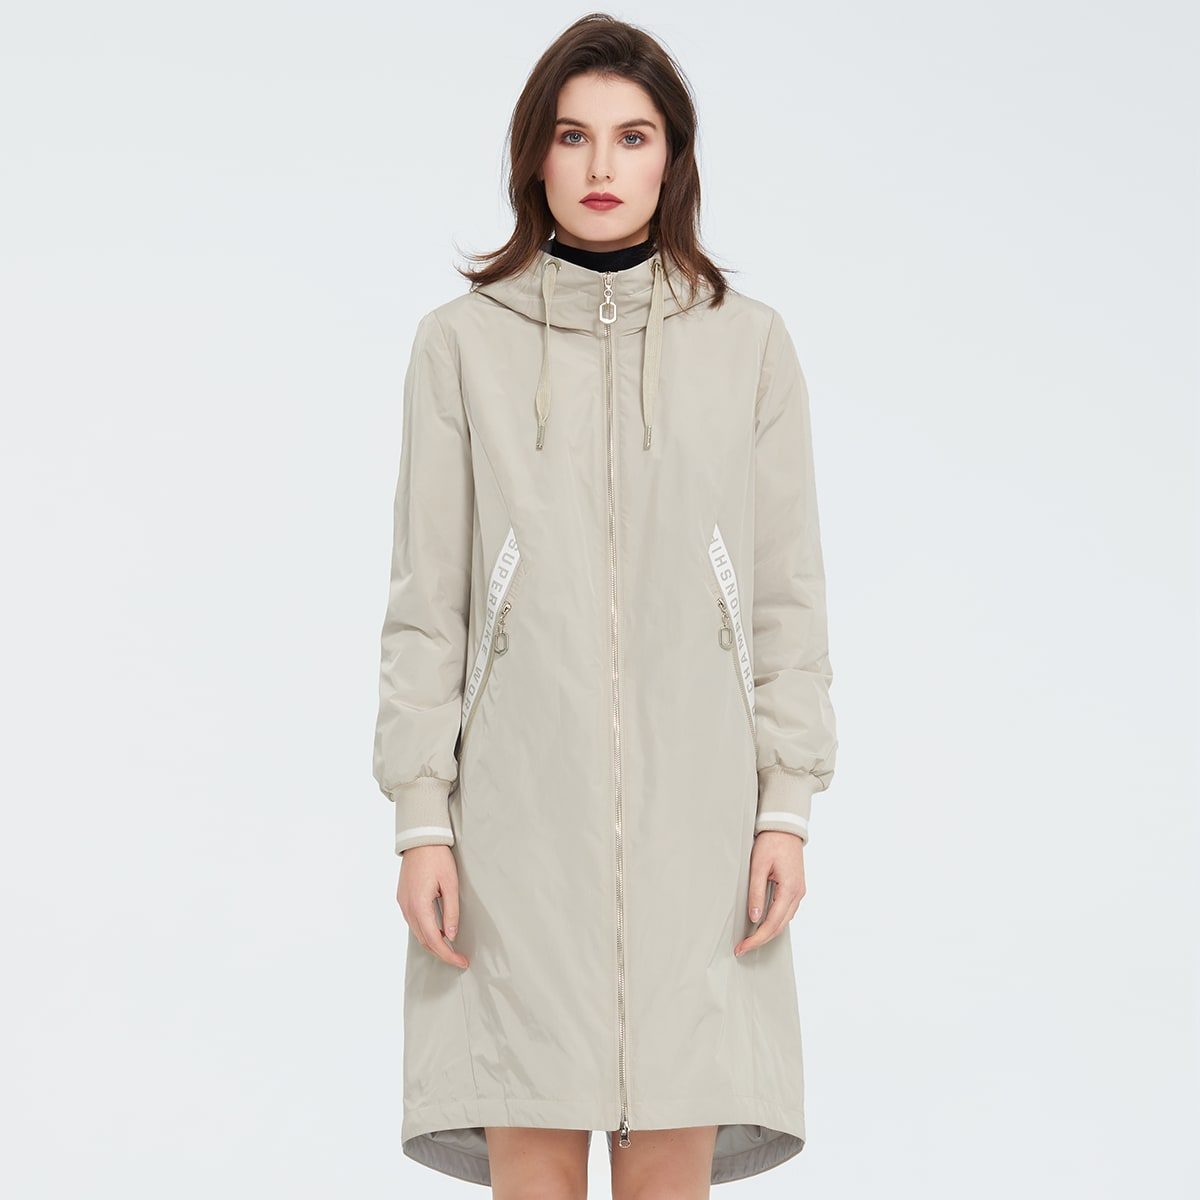 Ziai Letter Graphic Tape Zip Up Hooded Coat